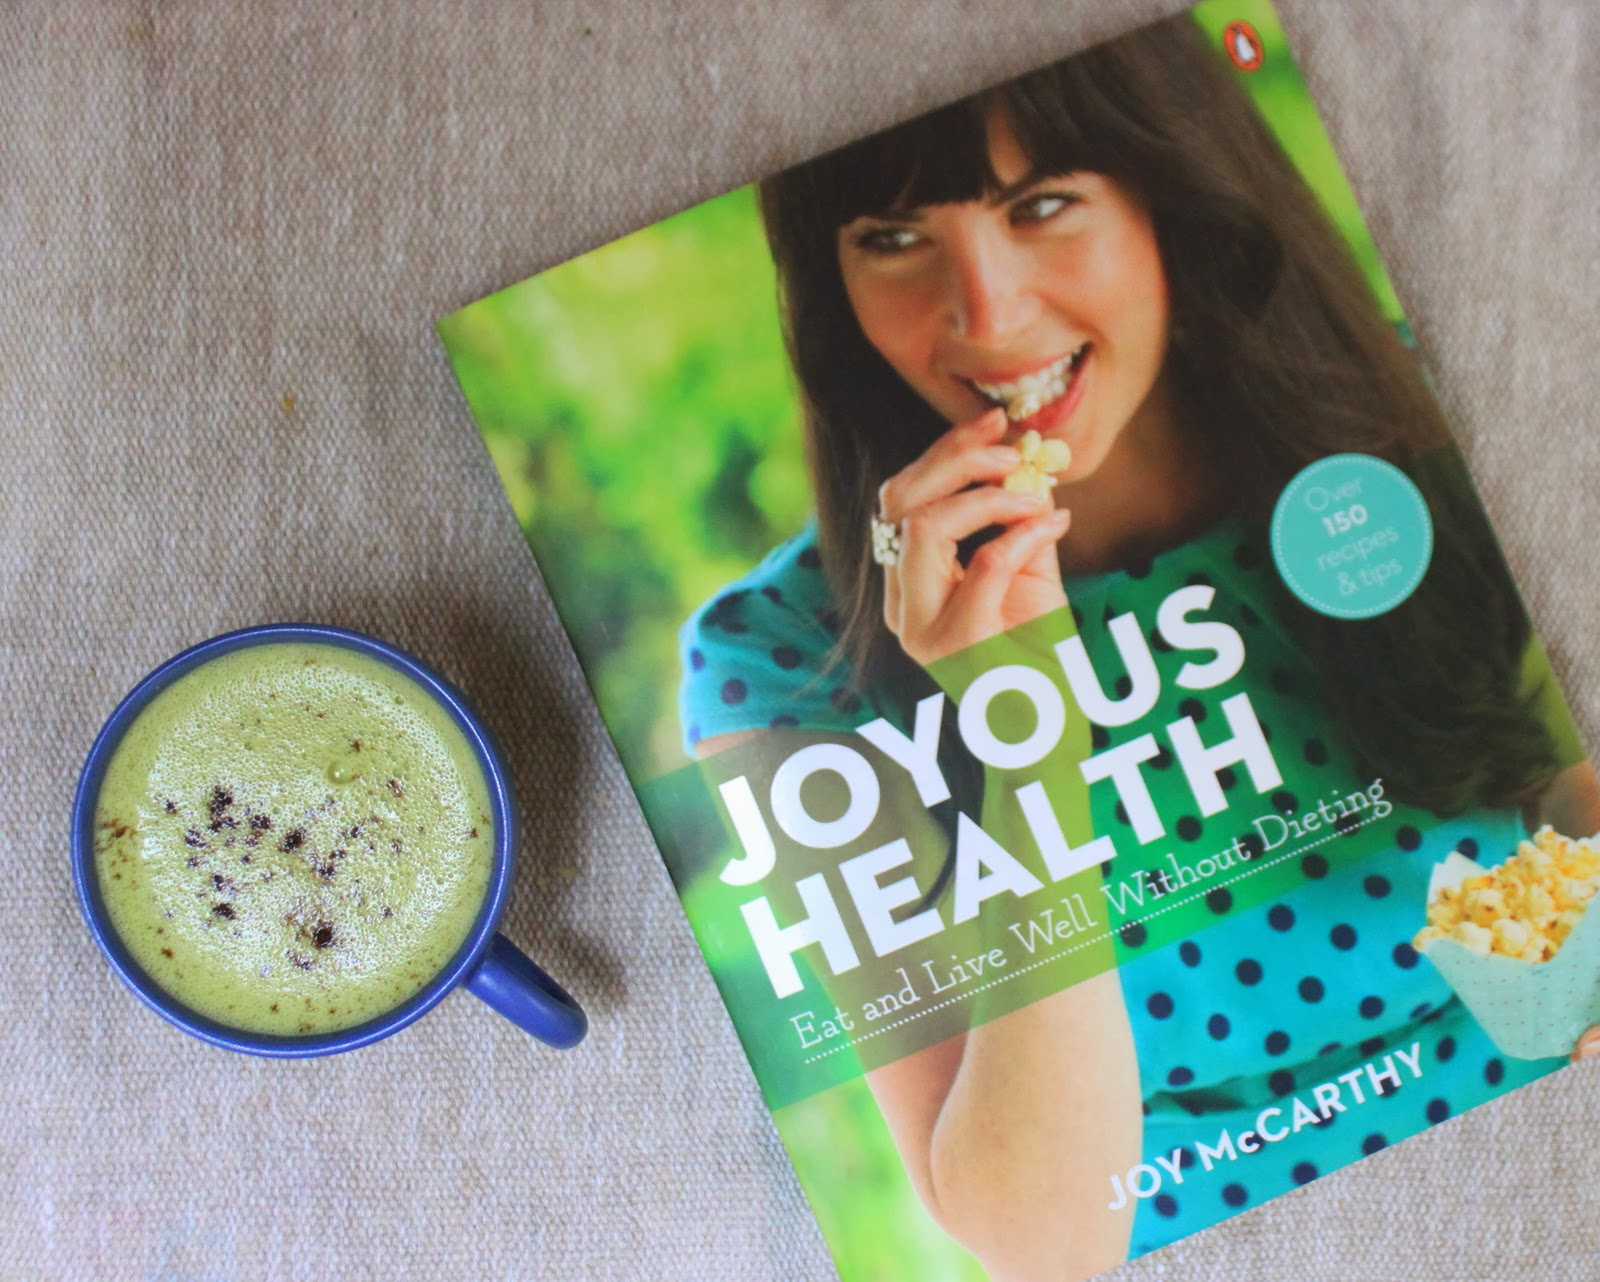 joyous health book review and interview with joy mccarthy